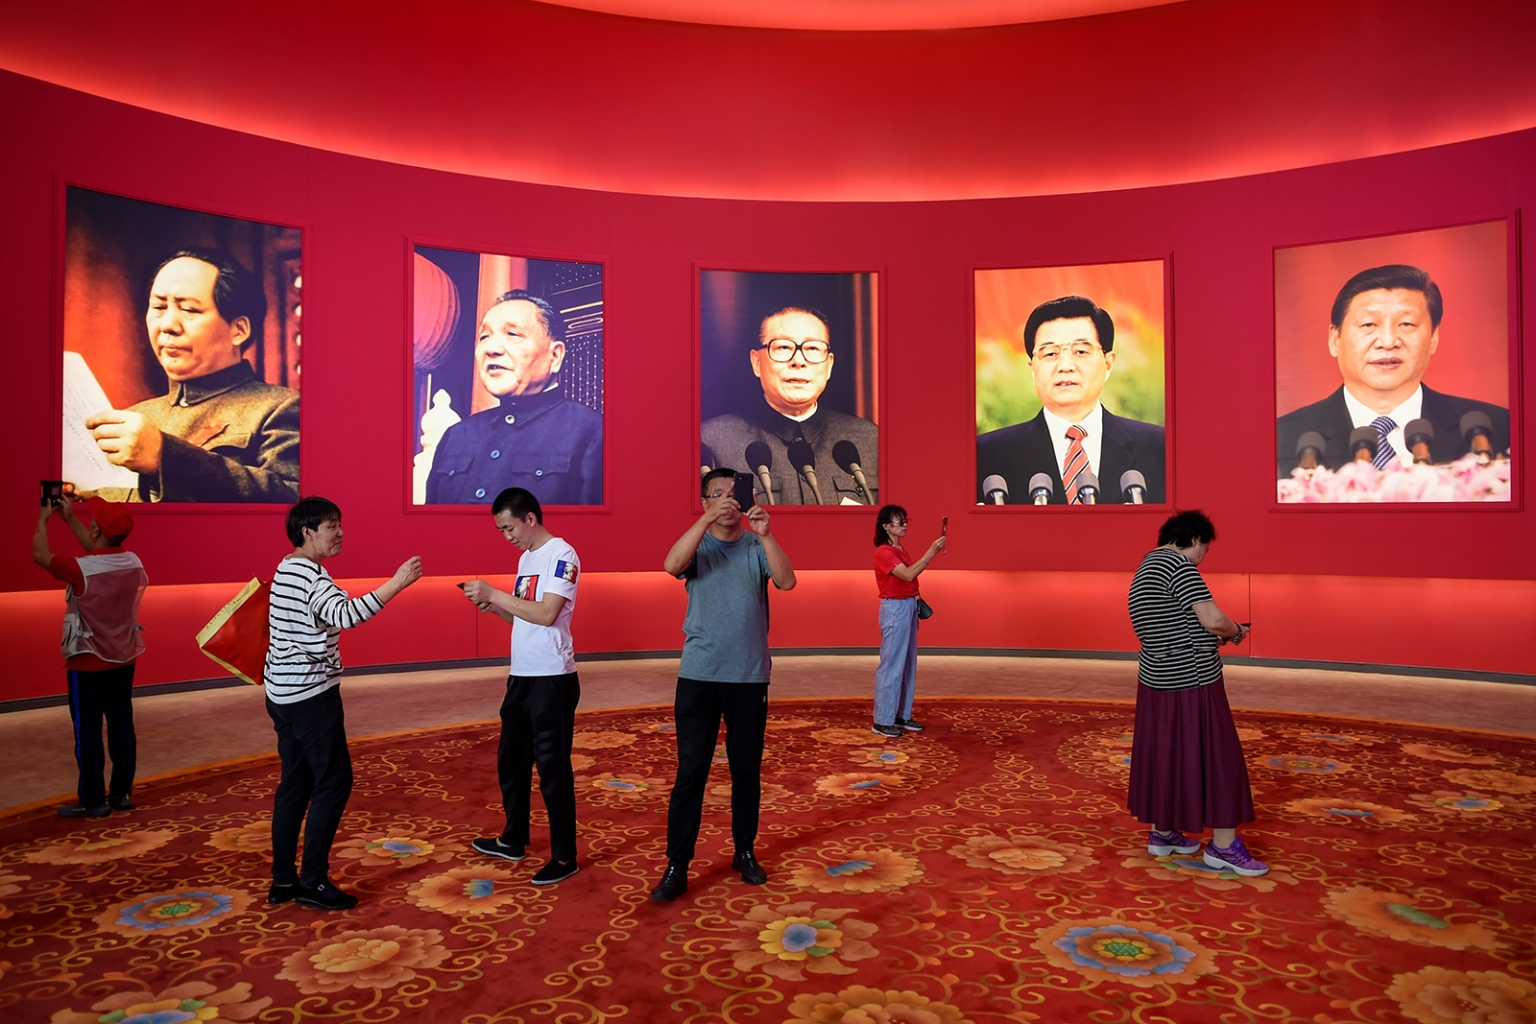 People take pictures in front of portraits of past and present Chinese leaders at an exhibition marking the country's achievements over the past 70 years ahead of the 70th anniversary of the founding of the People's Republic of China in Beijing on Sept. 26. WANG ZHAO/AFP/Getty Images